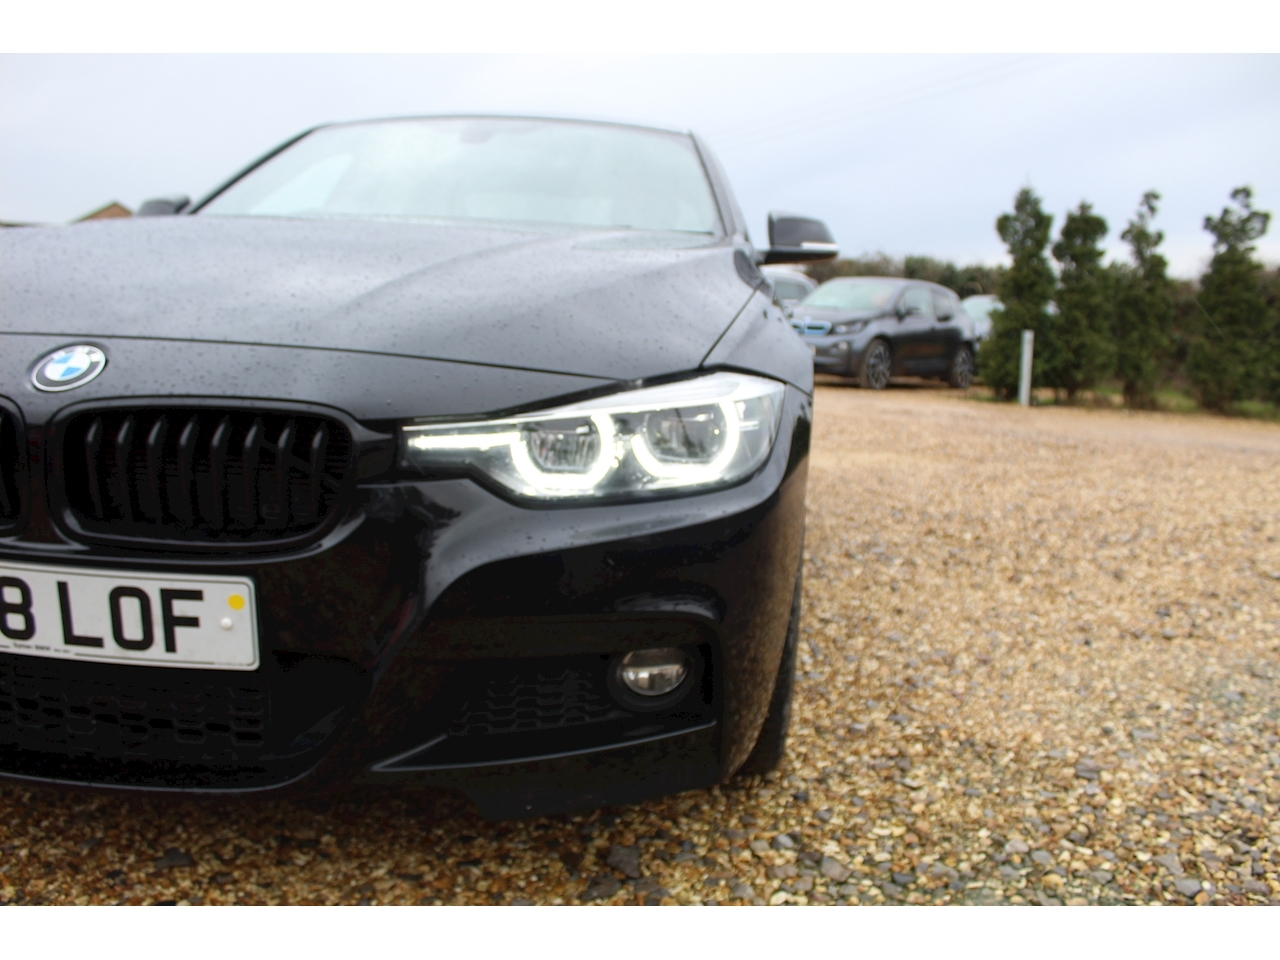 BMW 2.0 320d BluePerformance M Sport Shadow Edition Saloon 4dr Diesel Auto (s/s) (190 ps)